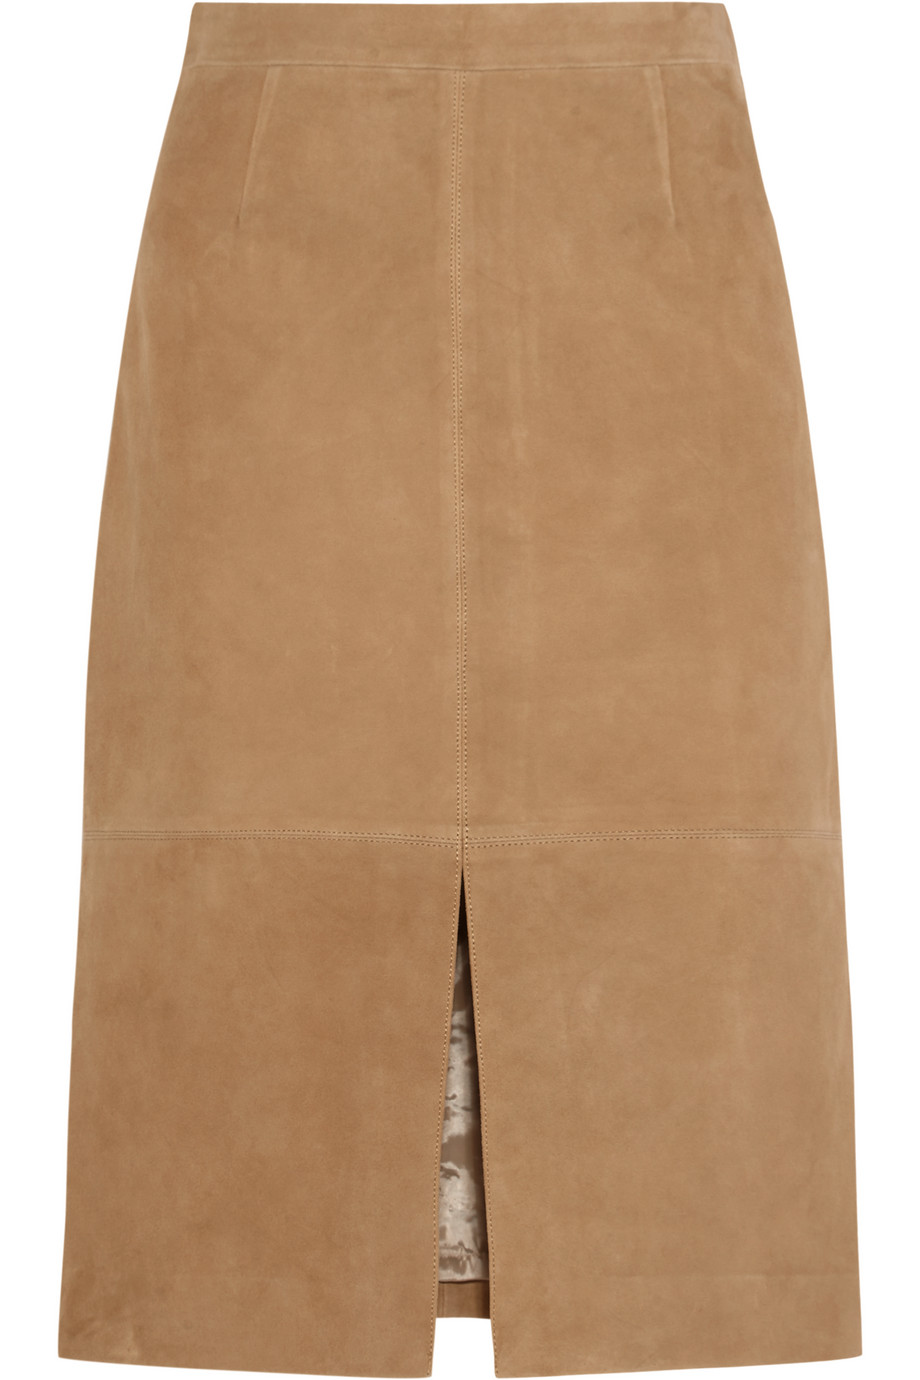 J.Crew Collection Suede Skirt, Sand, Women's, Size: 2